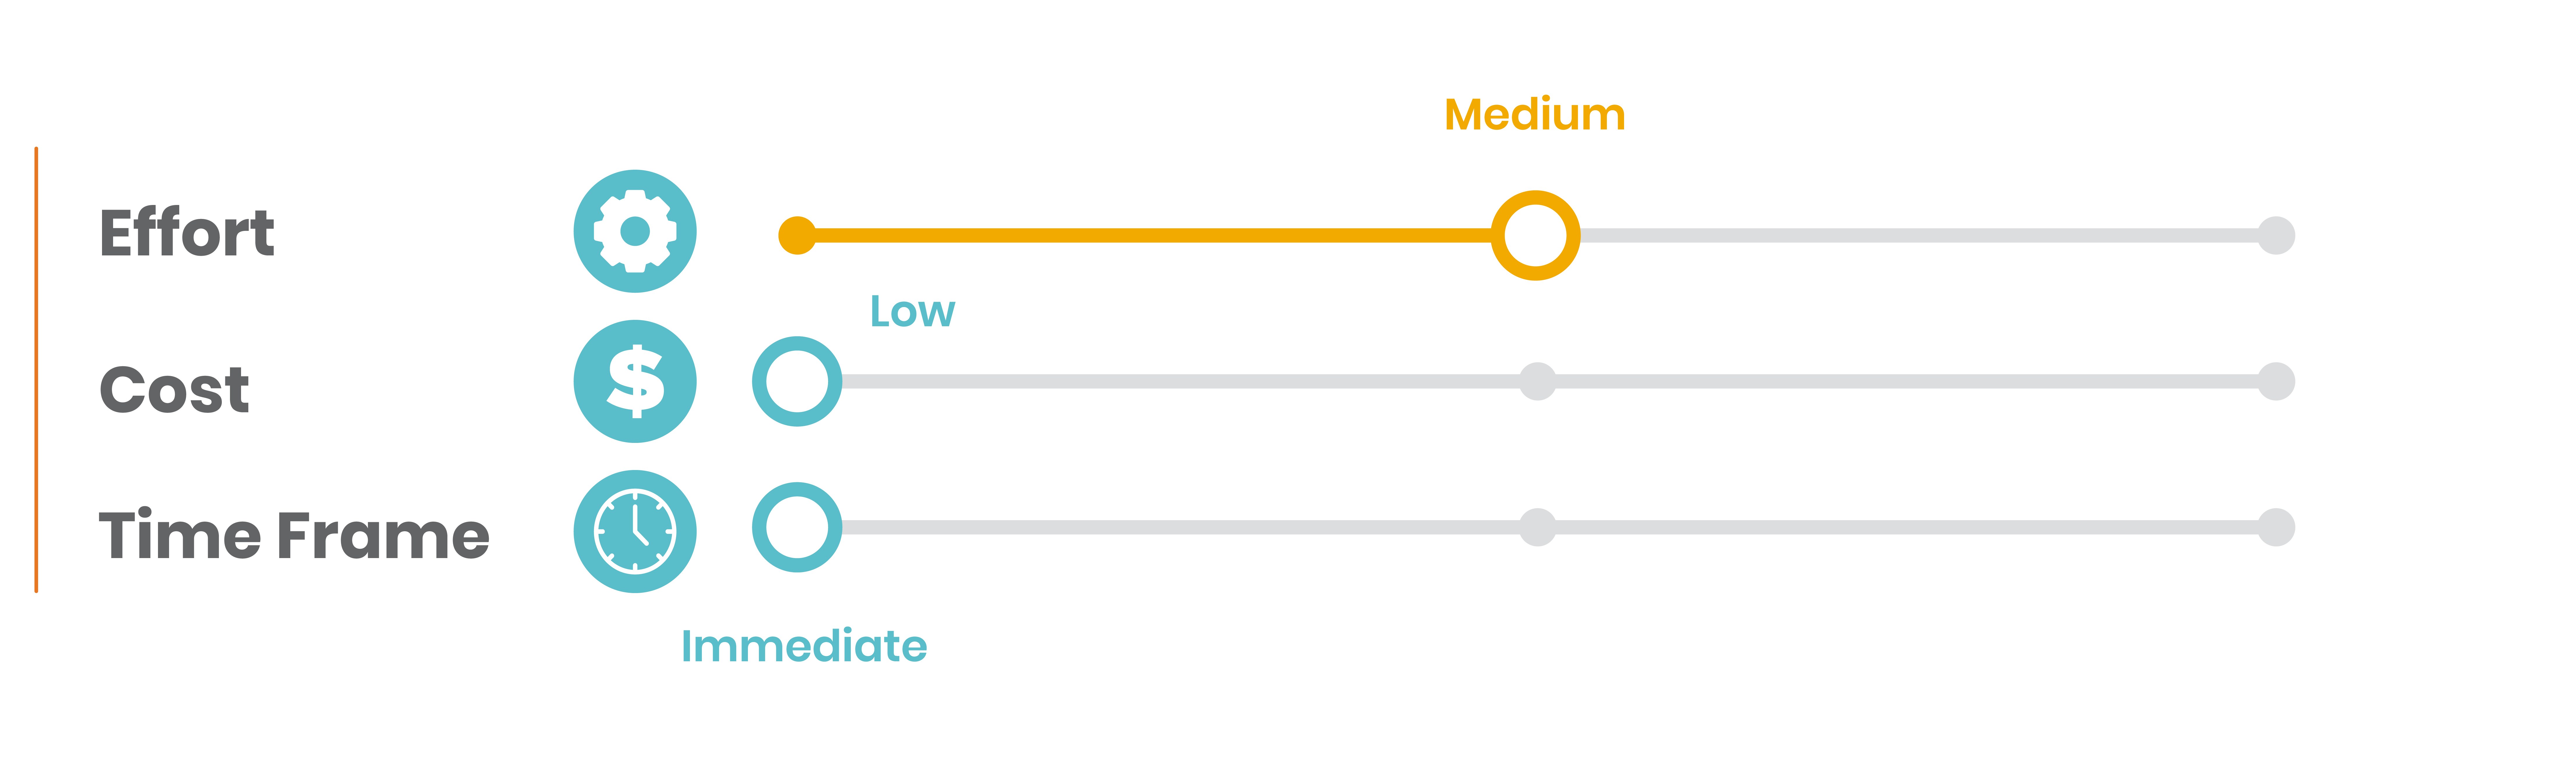 10.Bar side graphic with three metrics effort medium risk, cost low risk, time frame low risk